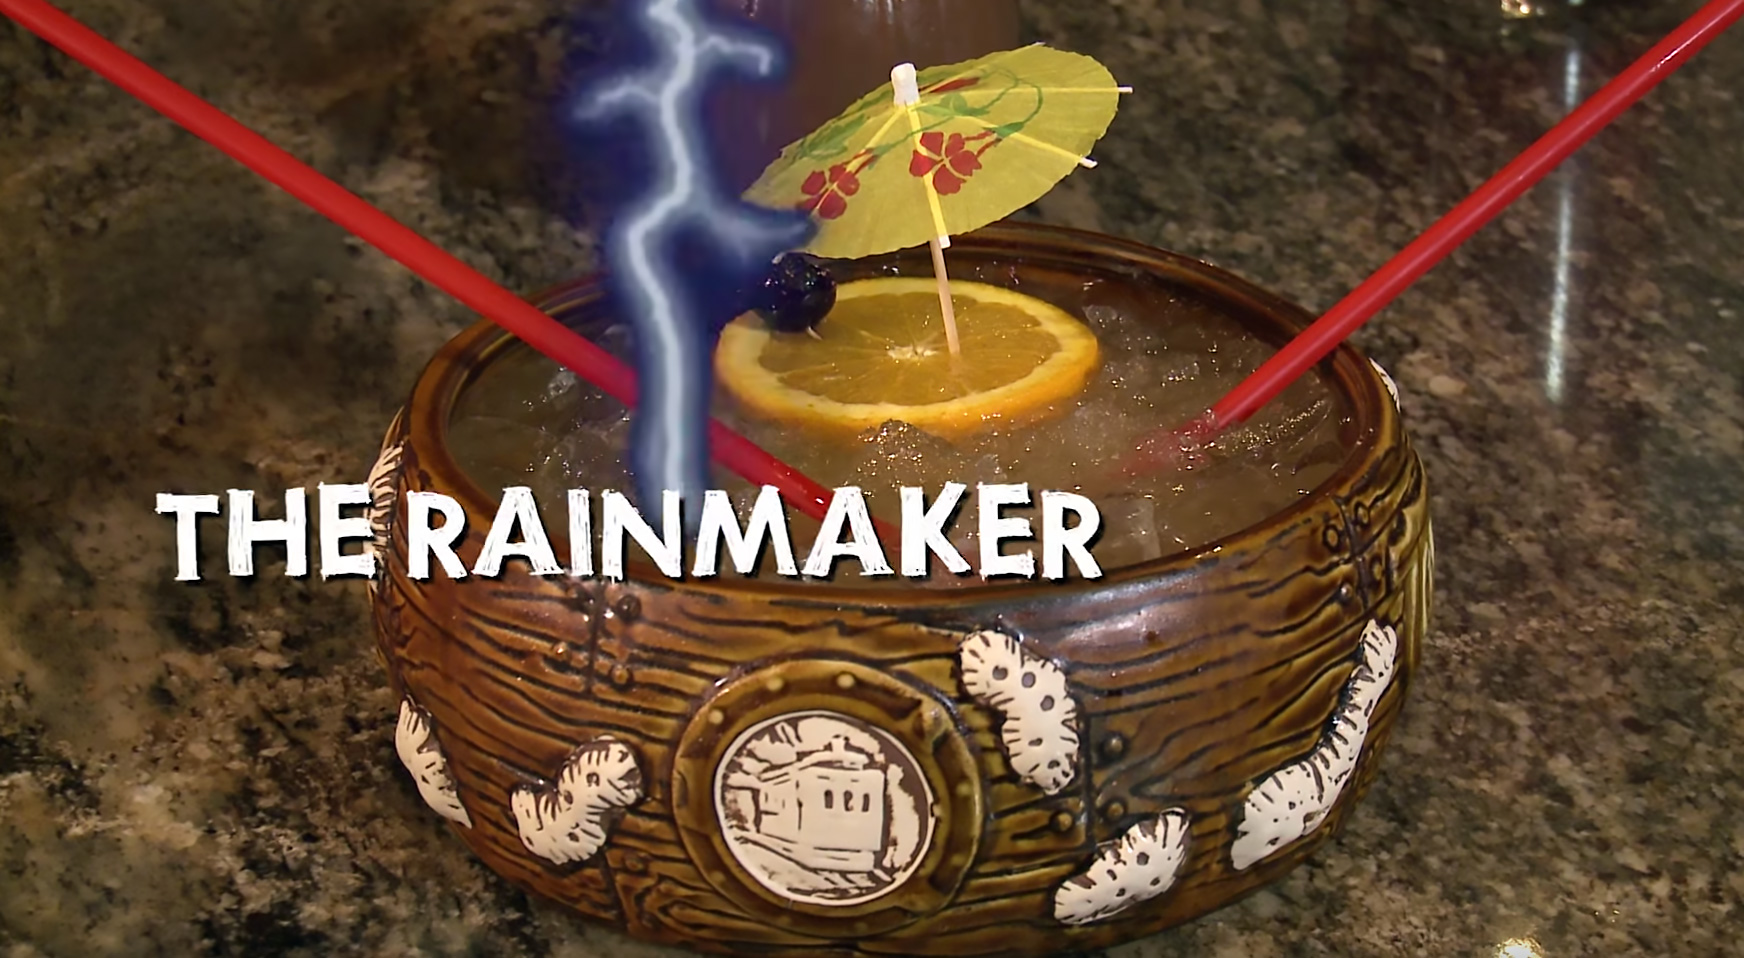 The Rainmaker cocktail at the Tonga Room